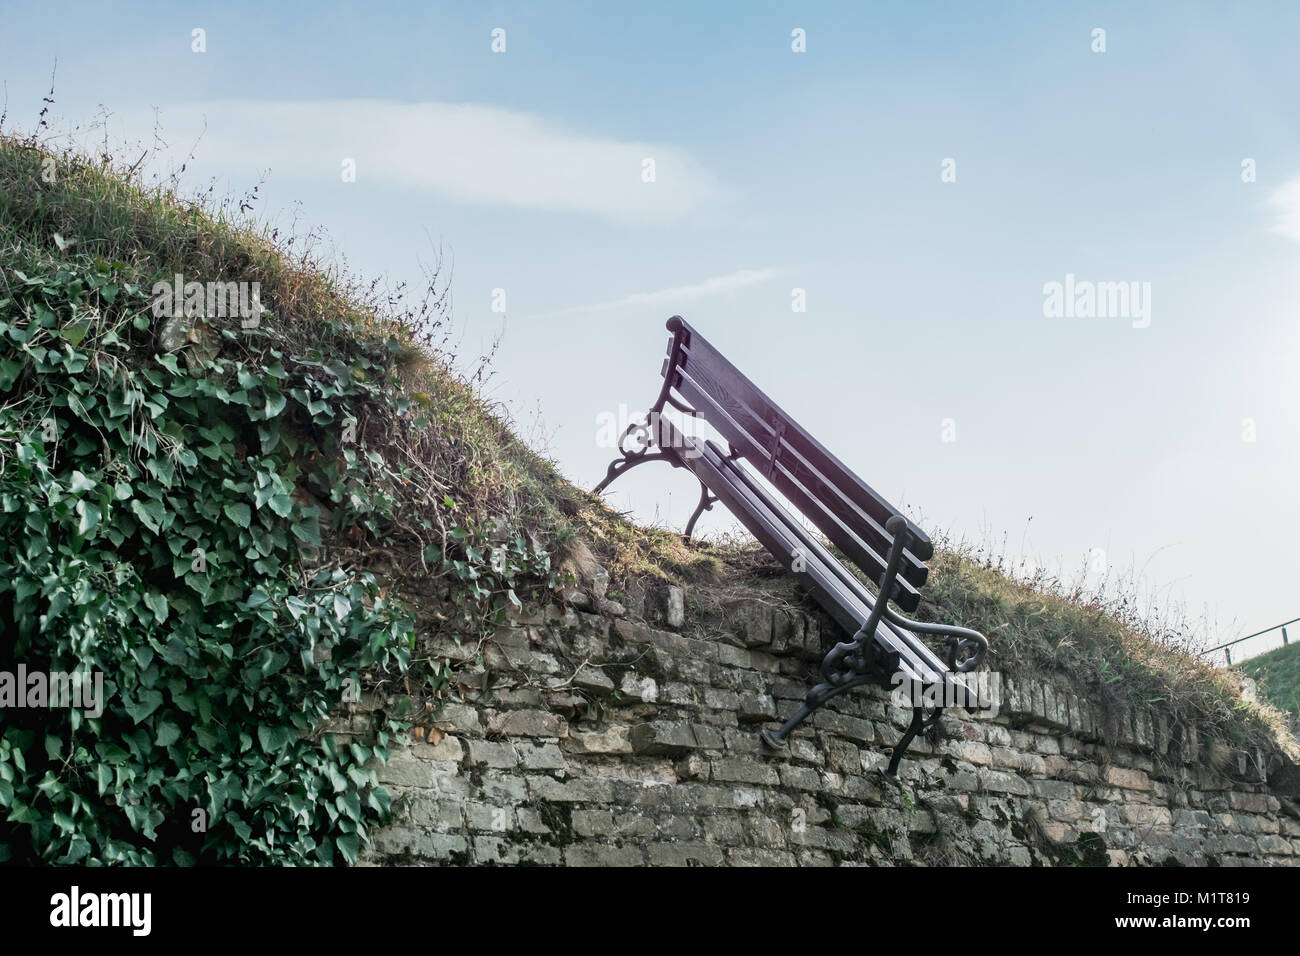 Vandalized wooden bench hanging on the fortress wall - Stock Image